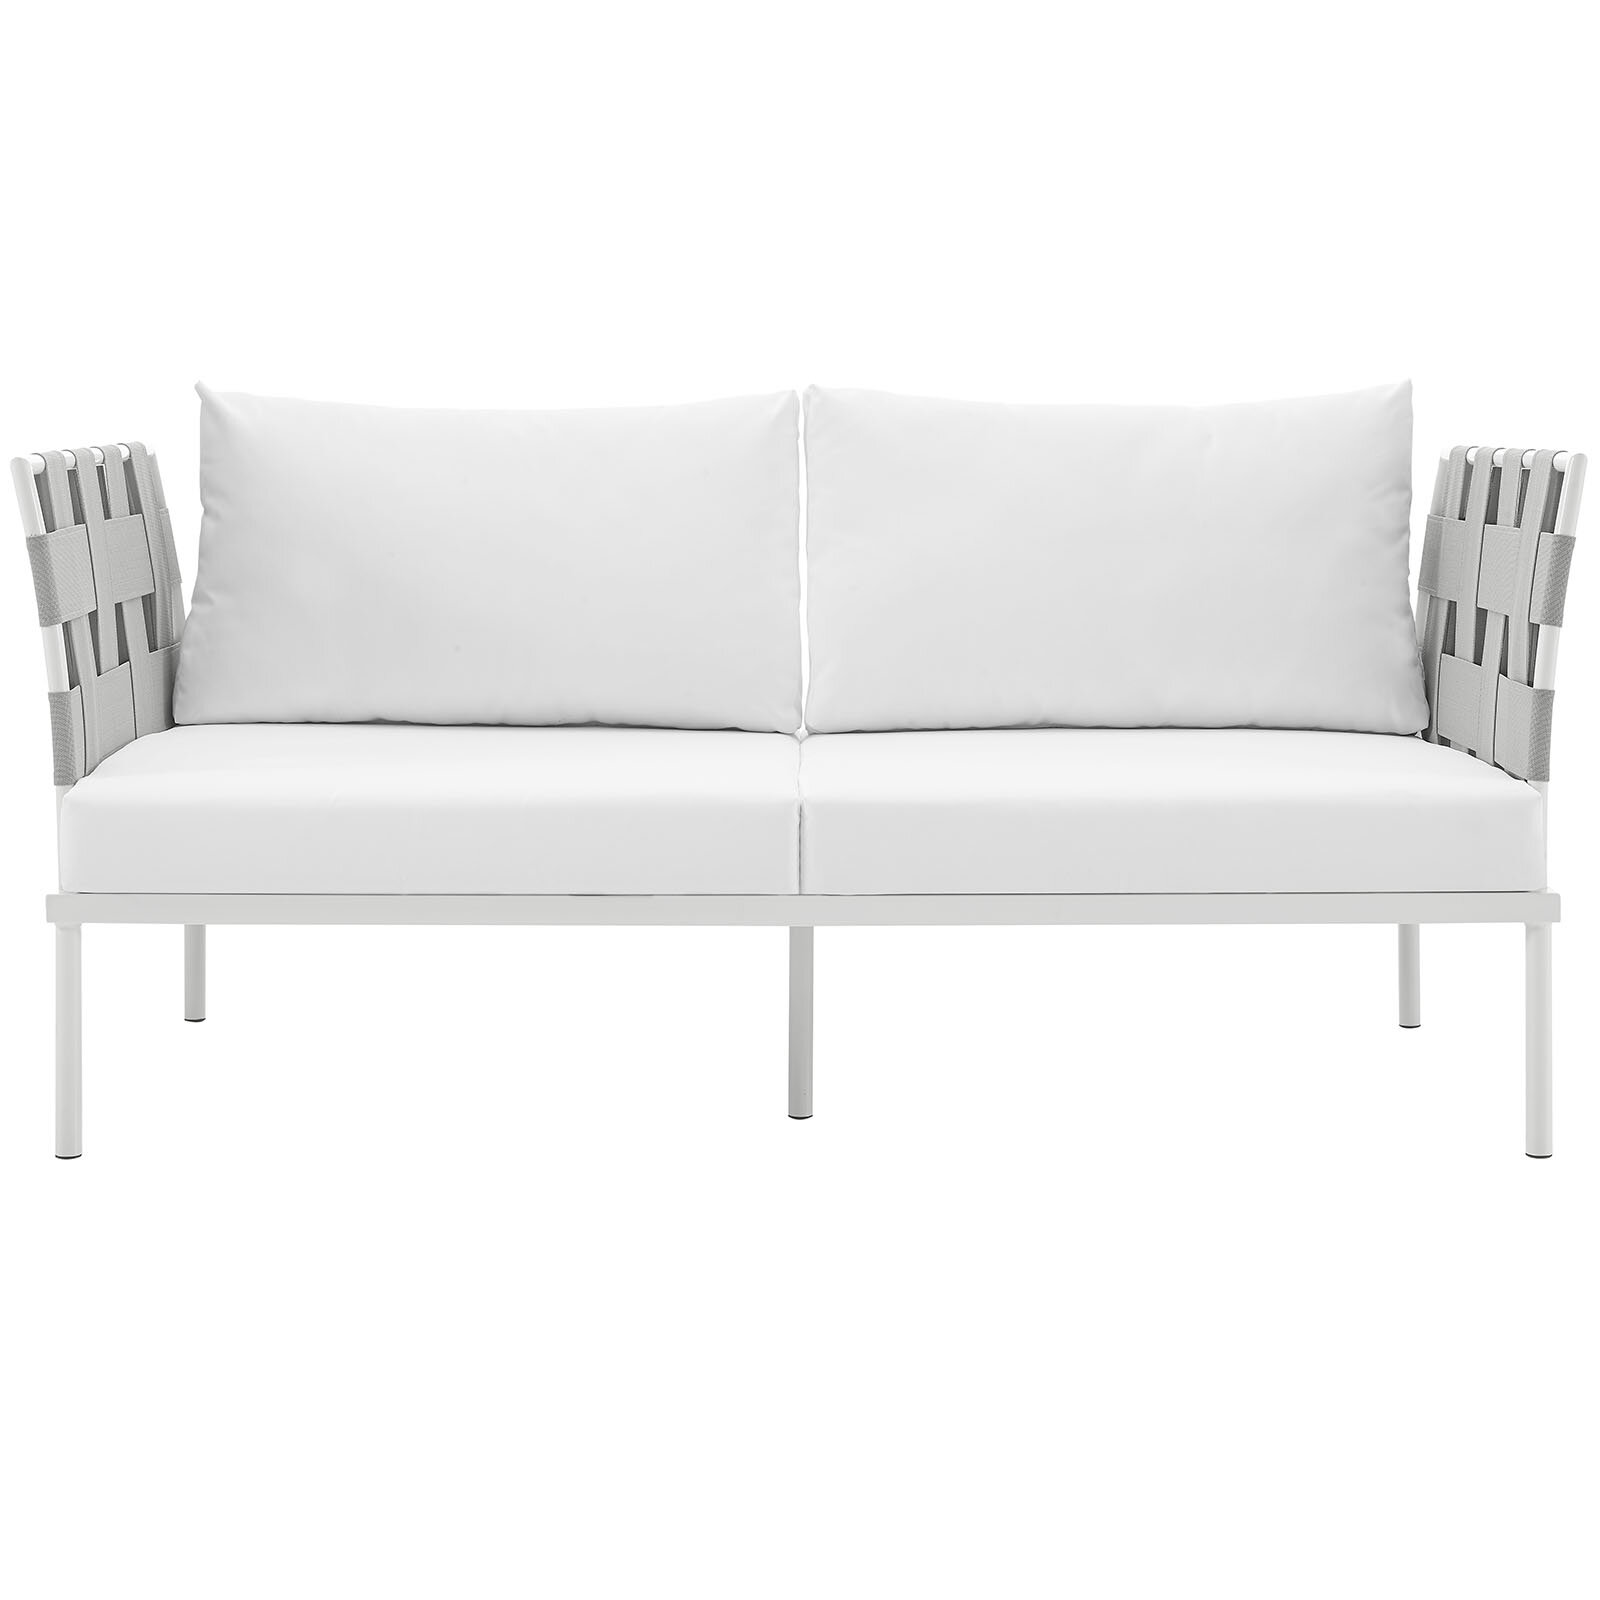 Reyna Outdoor Patio Loveseat With Cushions Reviews Allmodern